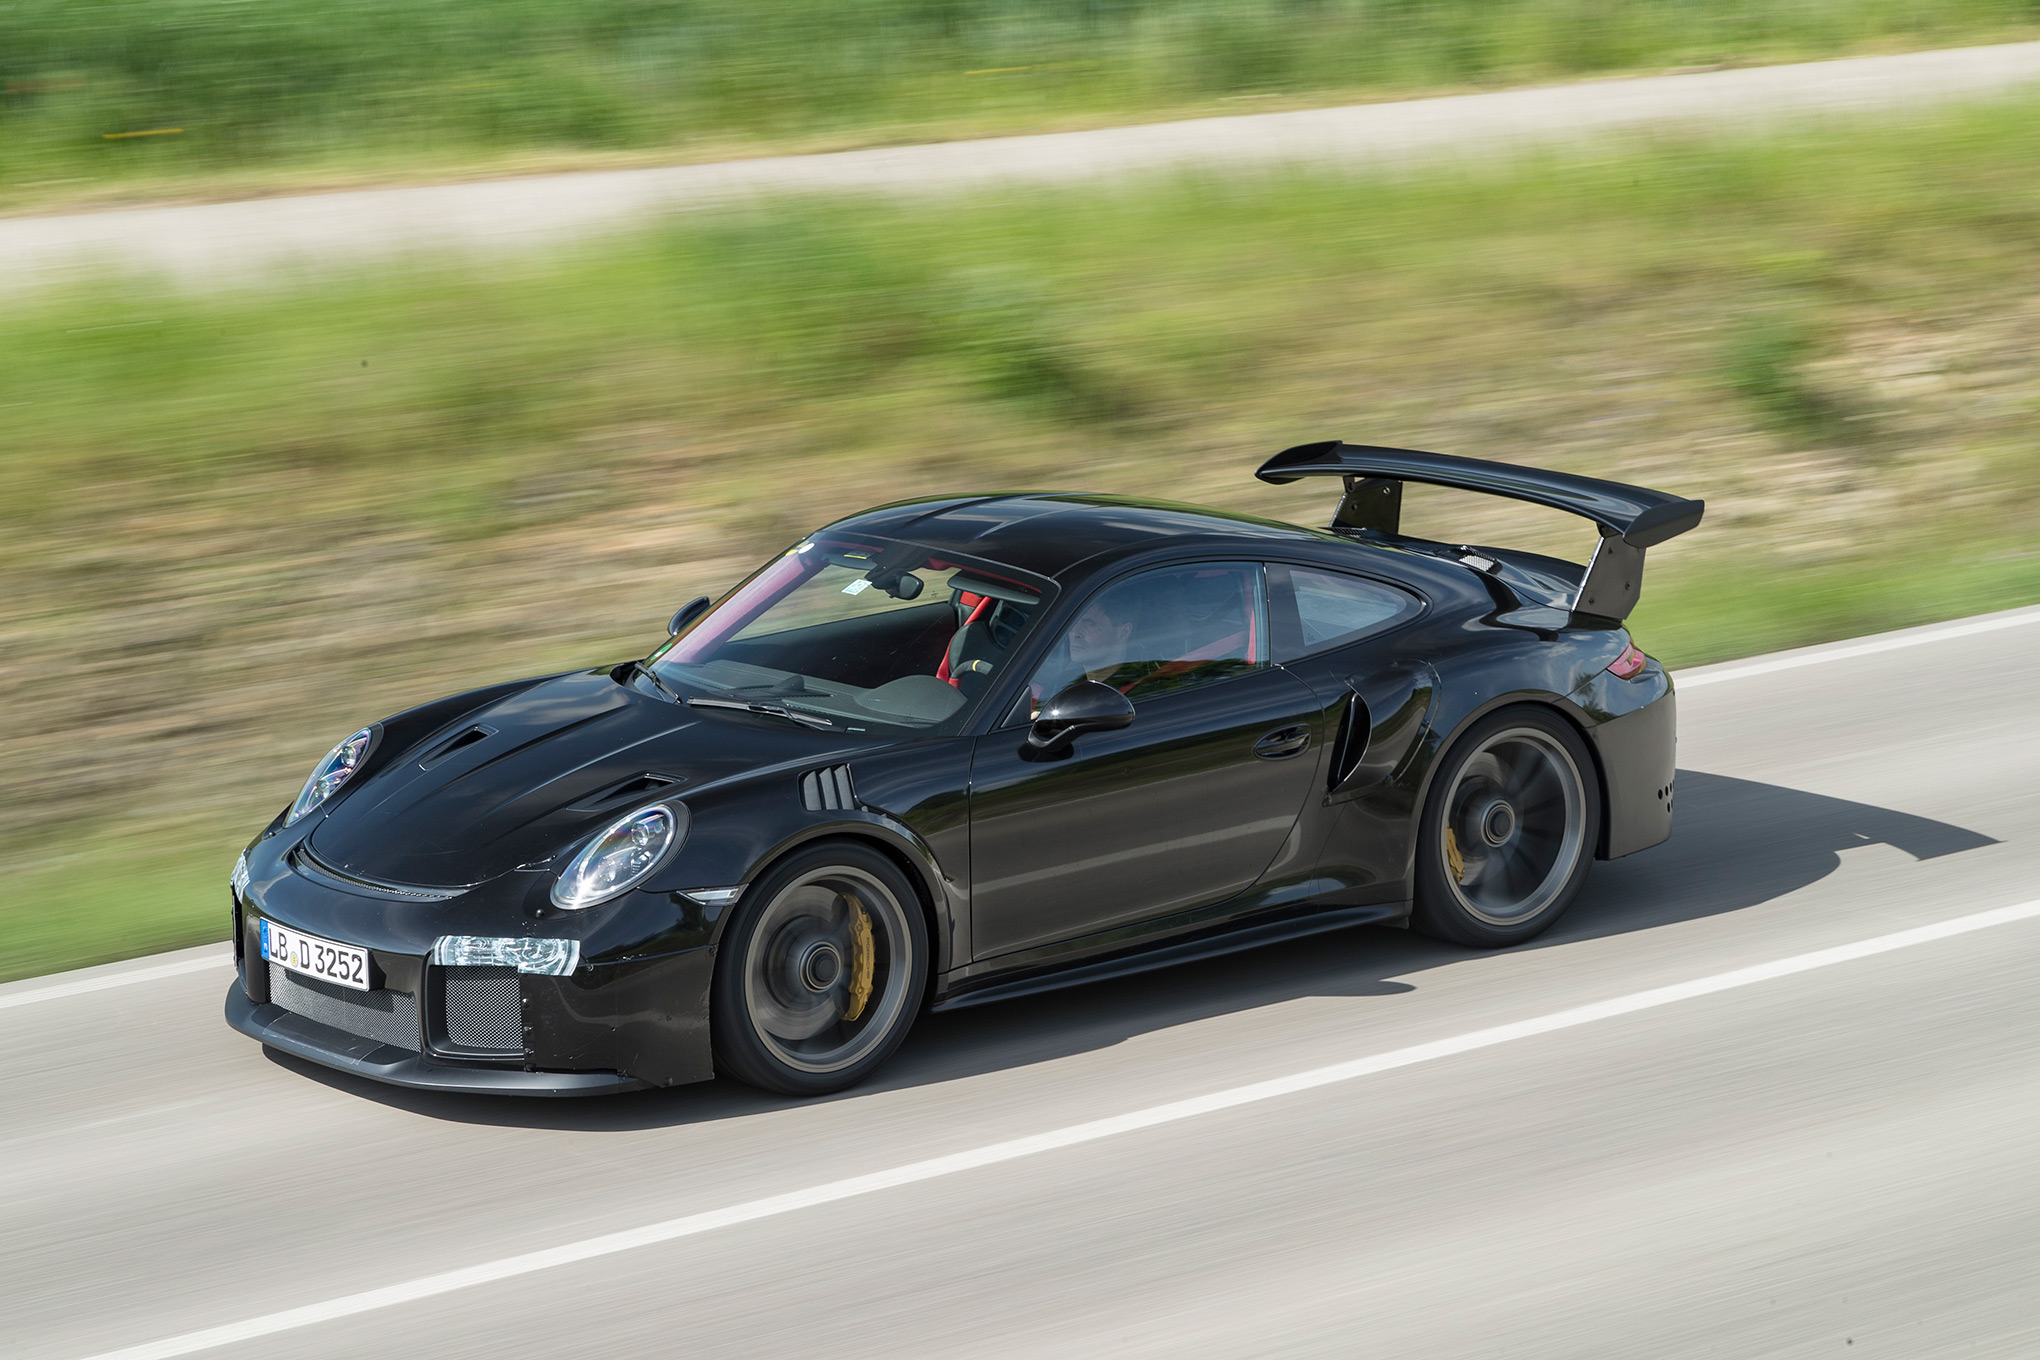 Porsche-911-GT2-RS Breathtaking How Many Porsche 911 Gt2 Were Made Cars Trend